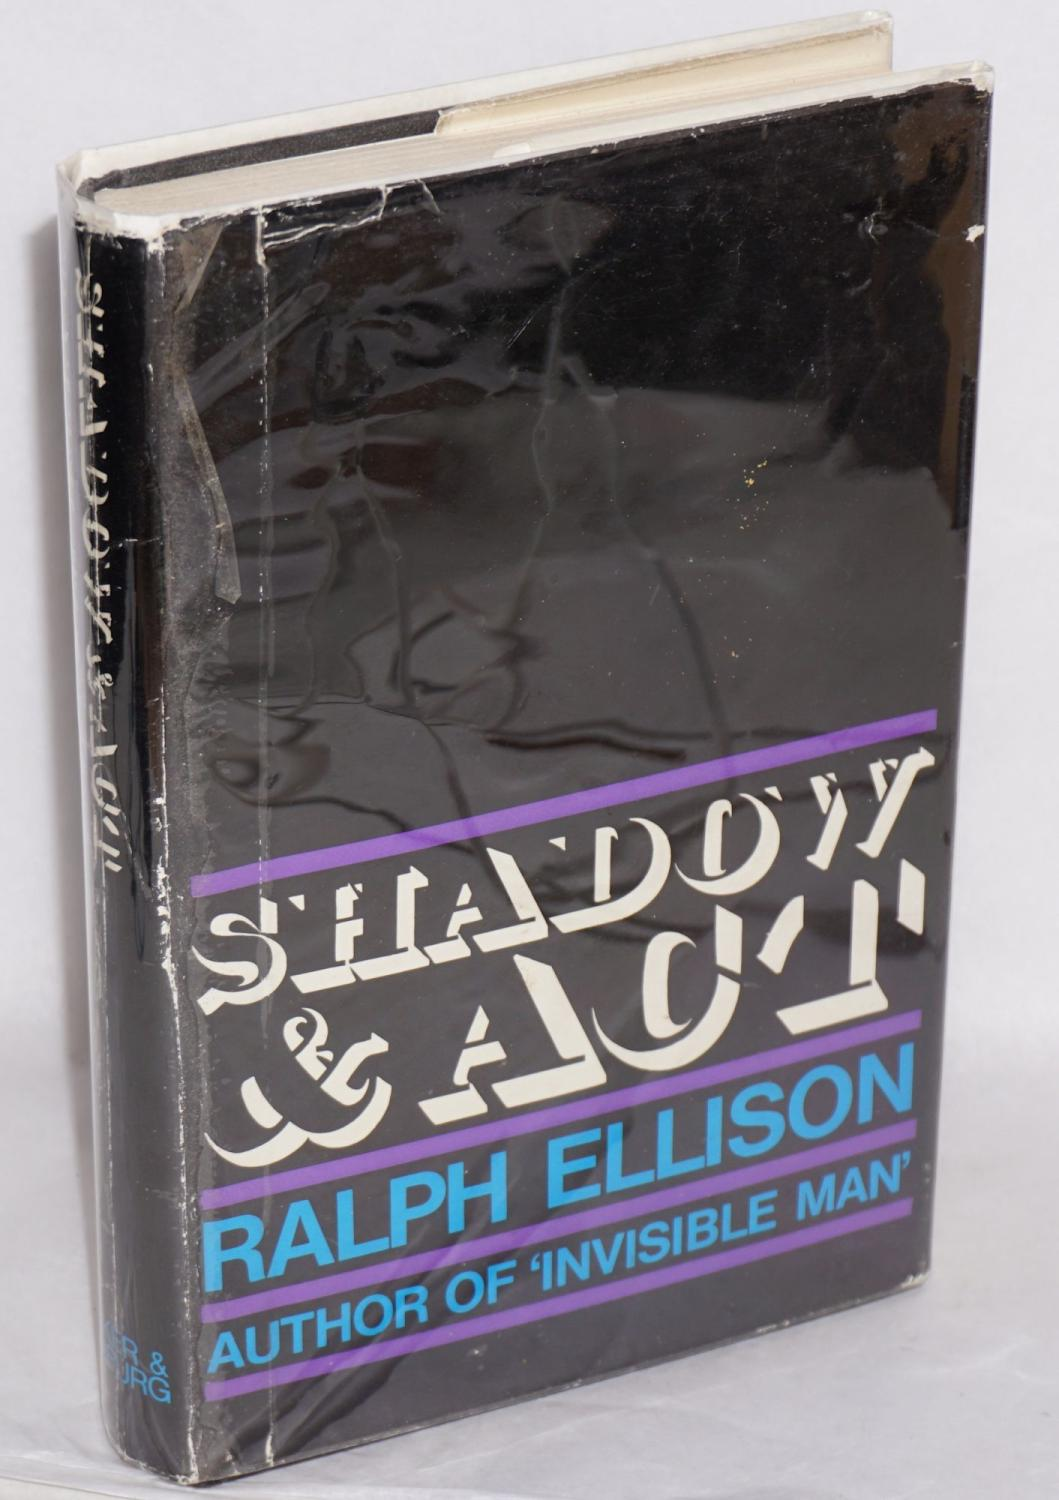 ralph ellison essays shadow and act 06102018 shadow and act by ralph ellison  the collected essays of ralph ellison by ralph ellison  waldo ellison, ralph 1914-1994.